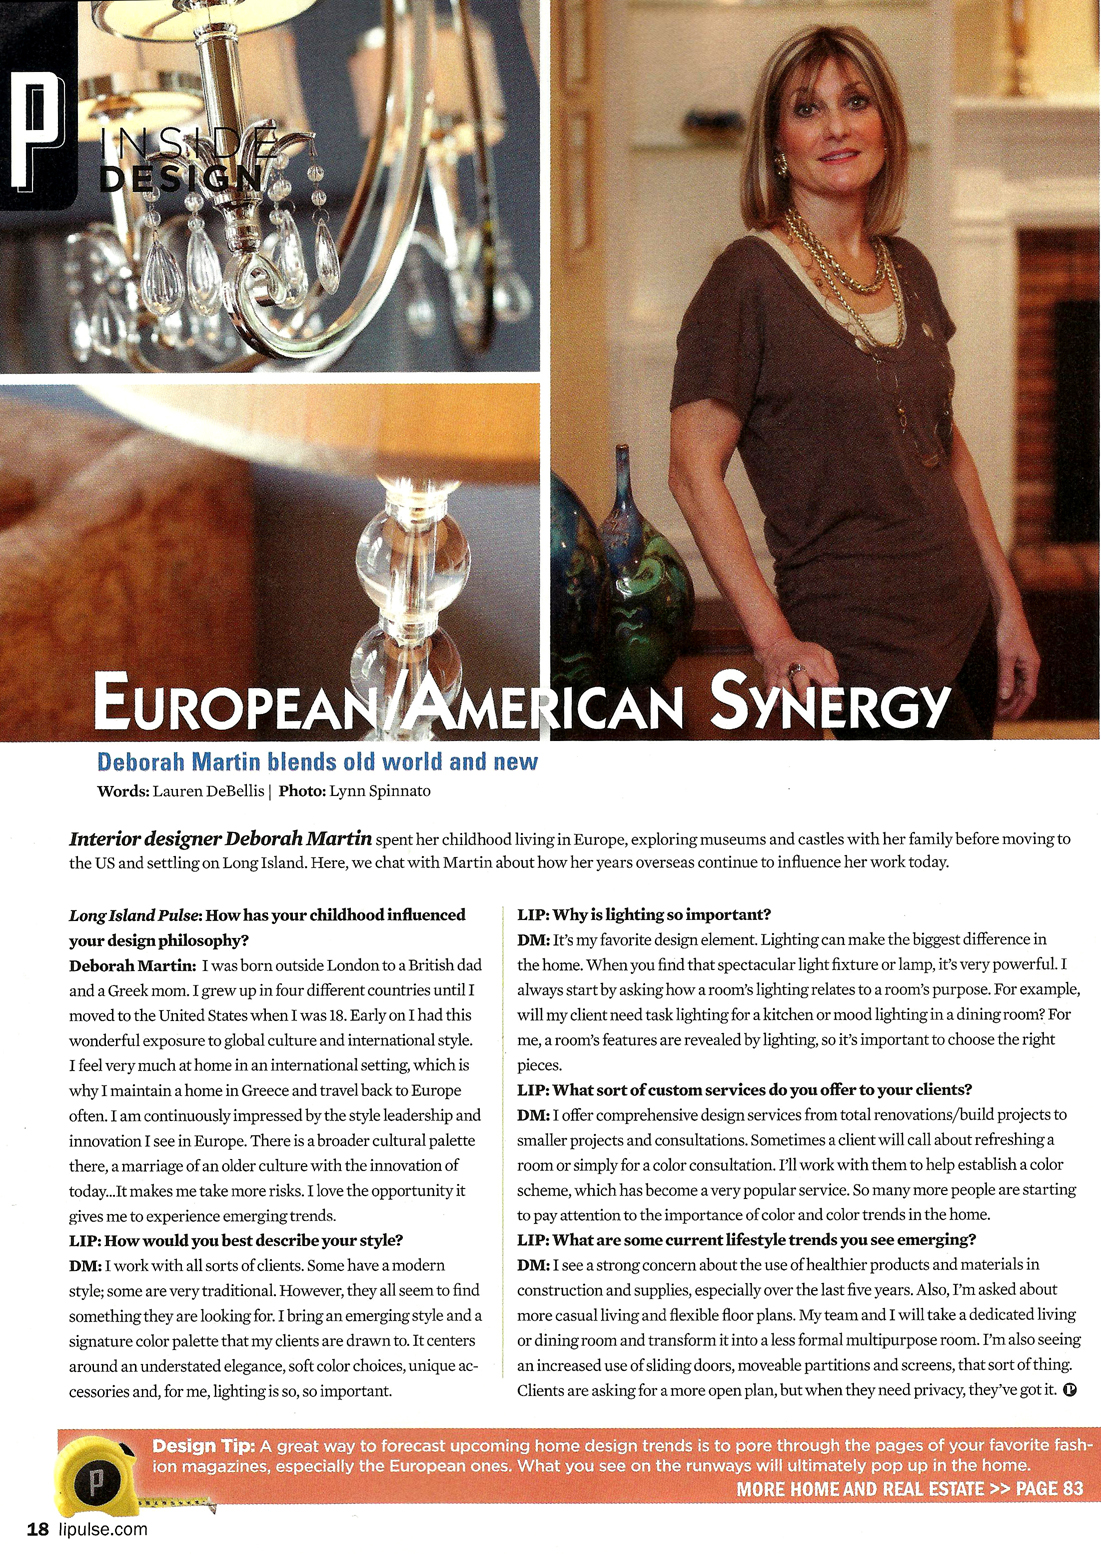 LI Pulse - March 2012Inside Design: Interview with Deborah Martin.